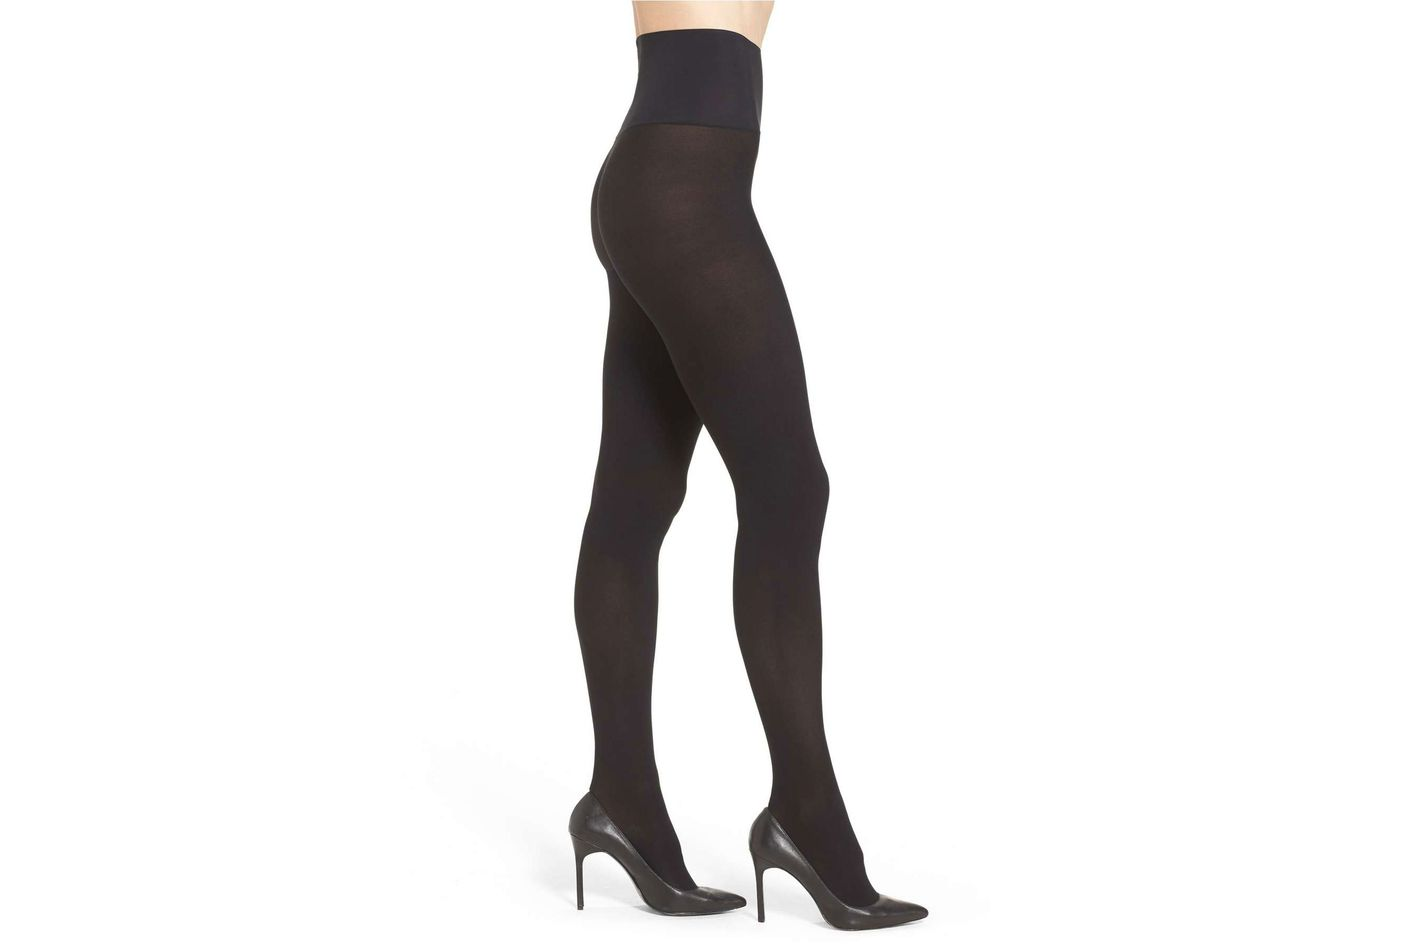 7a43227b939 8 Best Black Tights Women 2017  Opaque